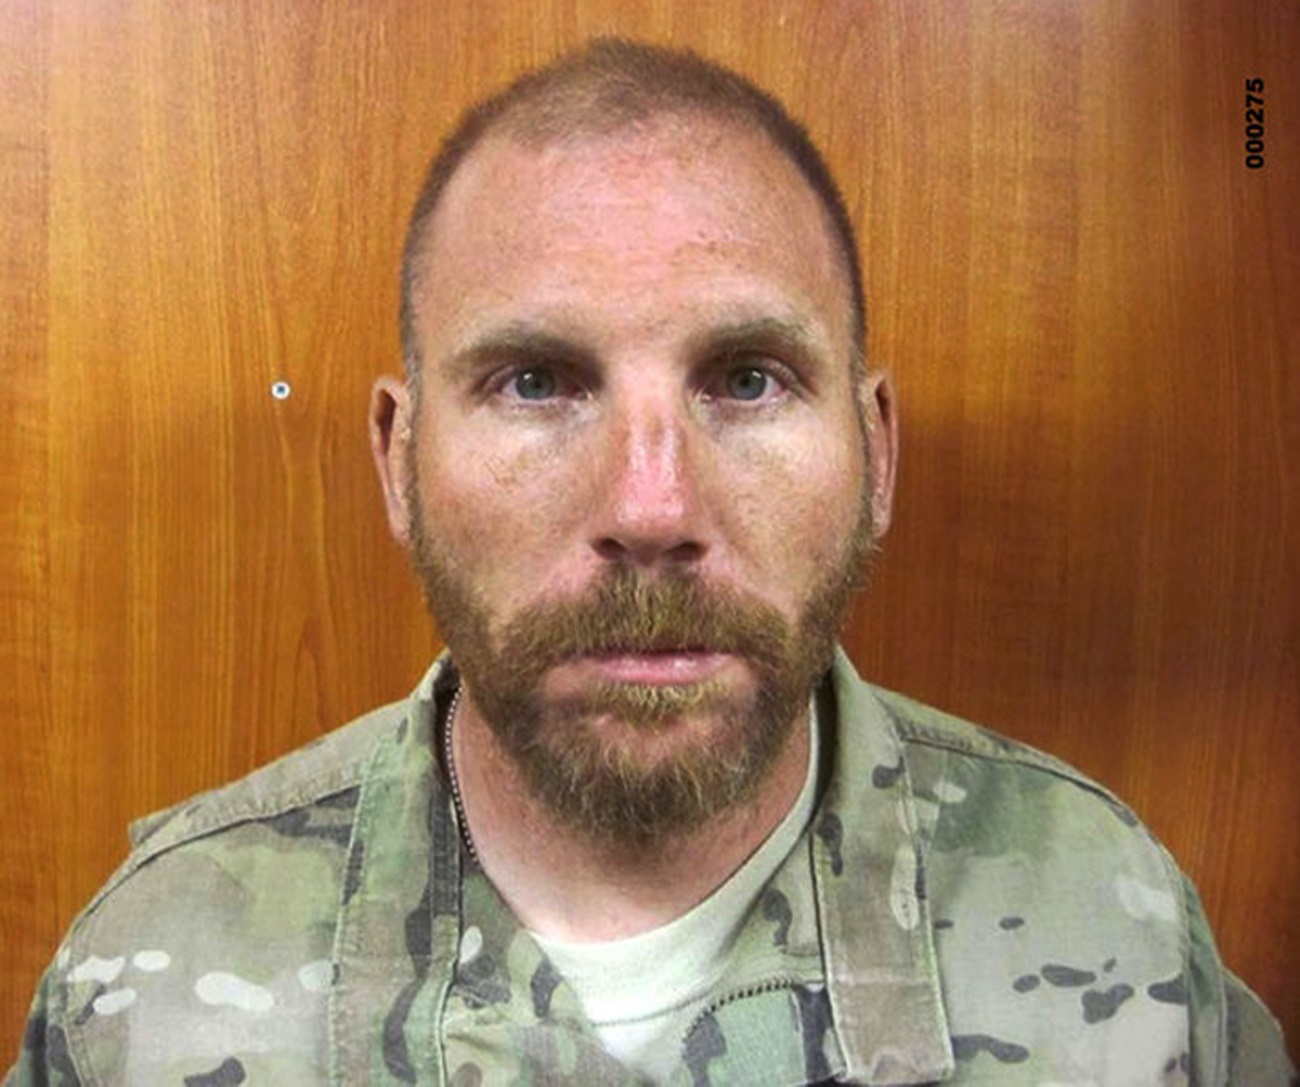 The petition for a civilian trial comes after former Army Staff Sgt. Robert Bales, 45, exhausted his appeals through the military justice system. (Army)